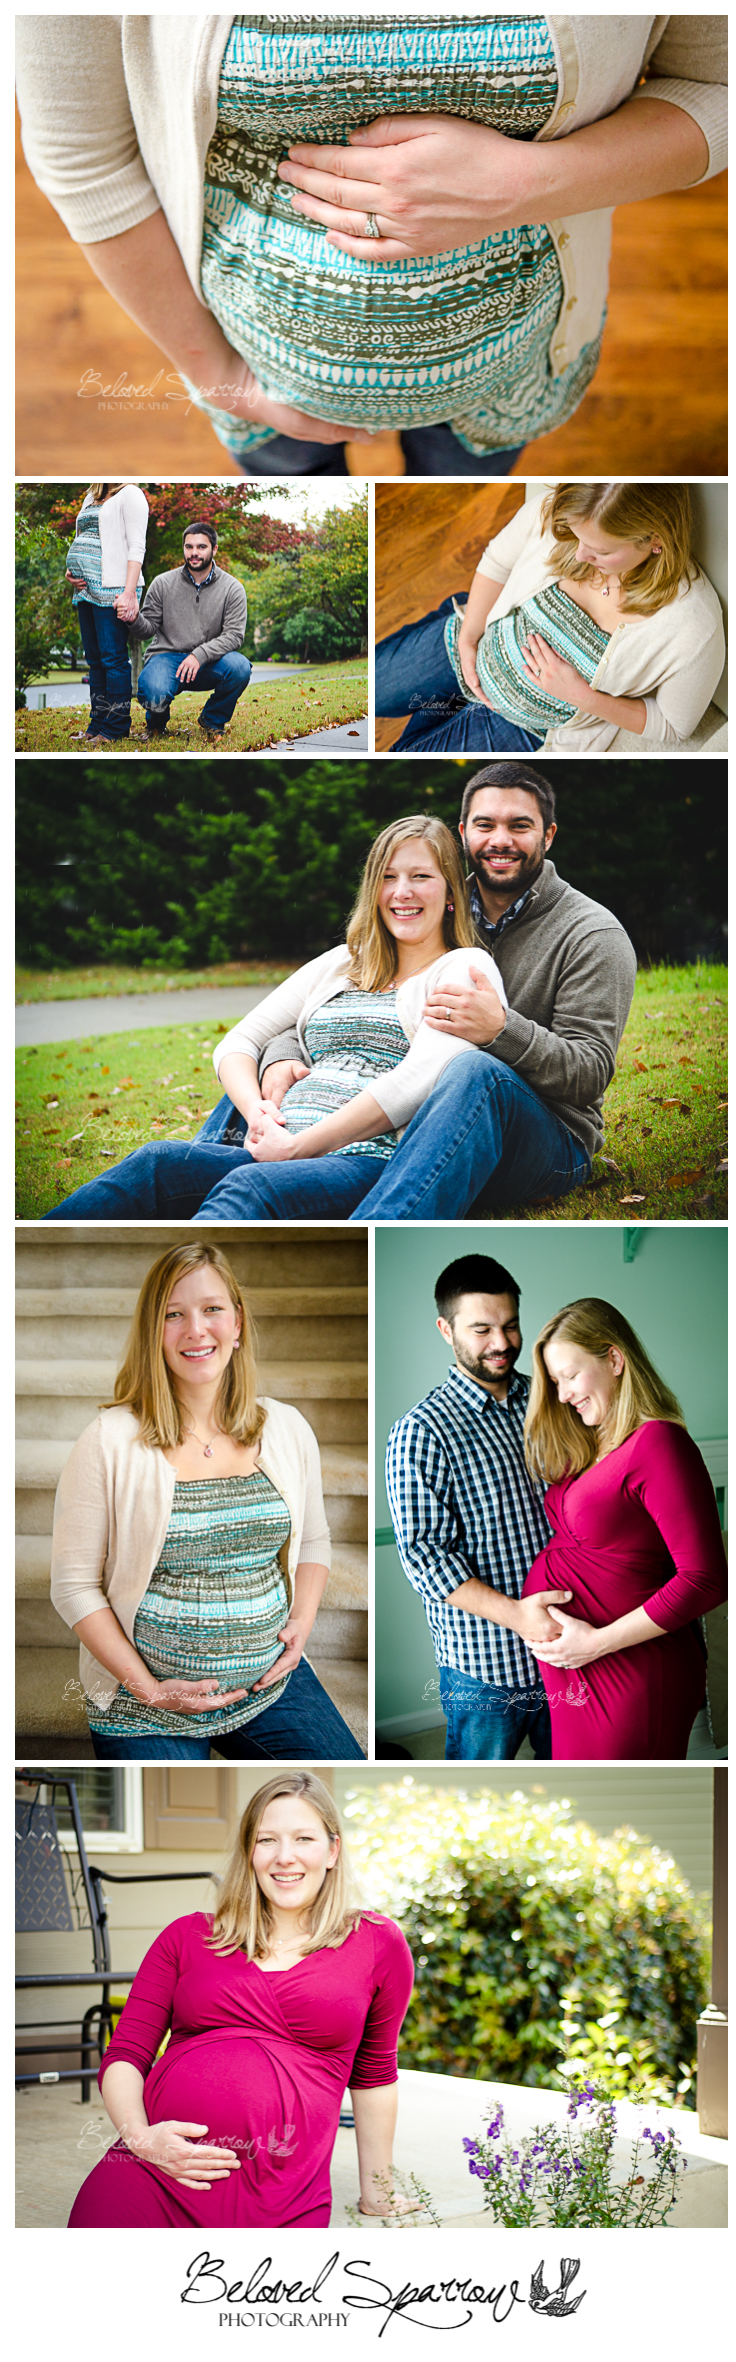 Peachtree City Maternity Professional Photographer